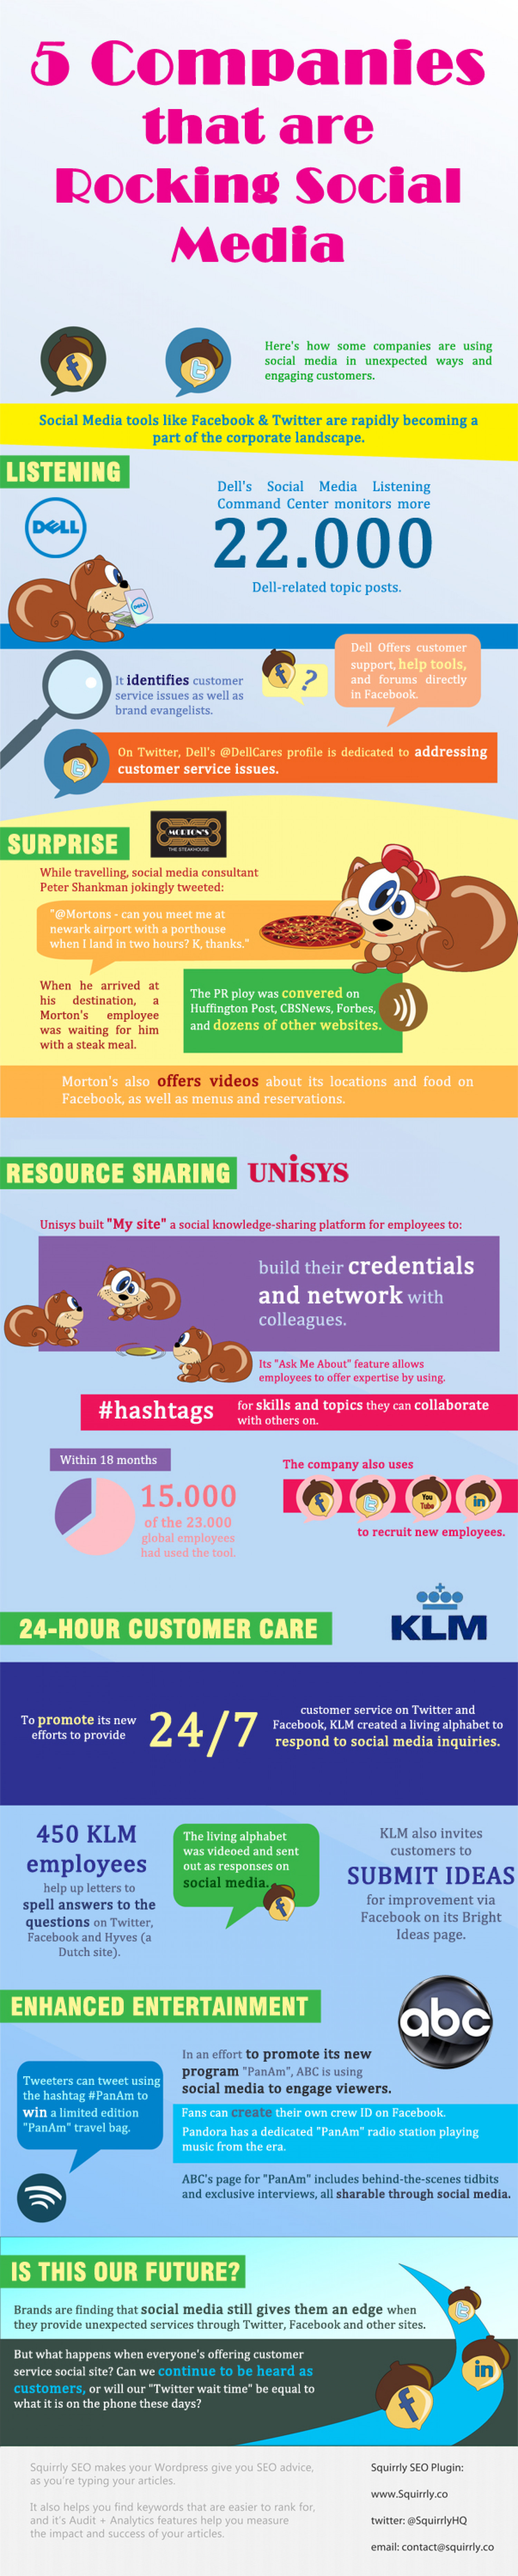 5 Companies that are Rocking Social Media Infographic